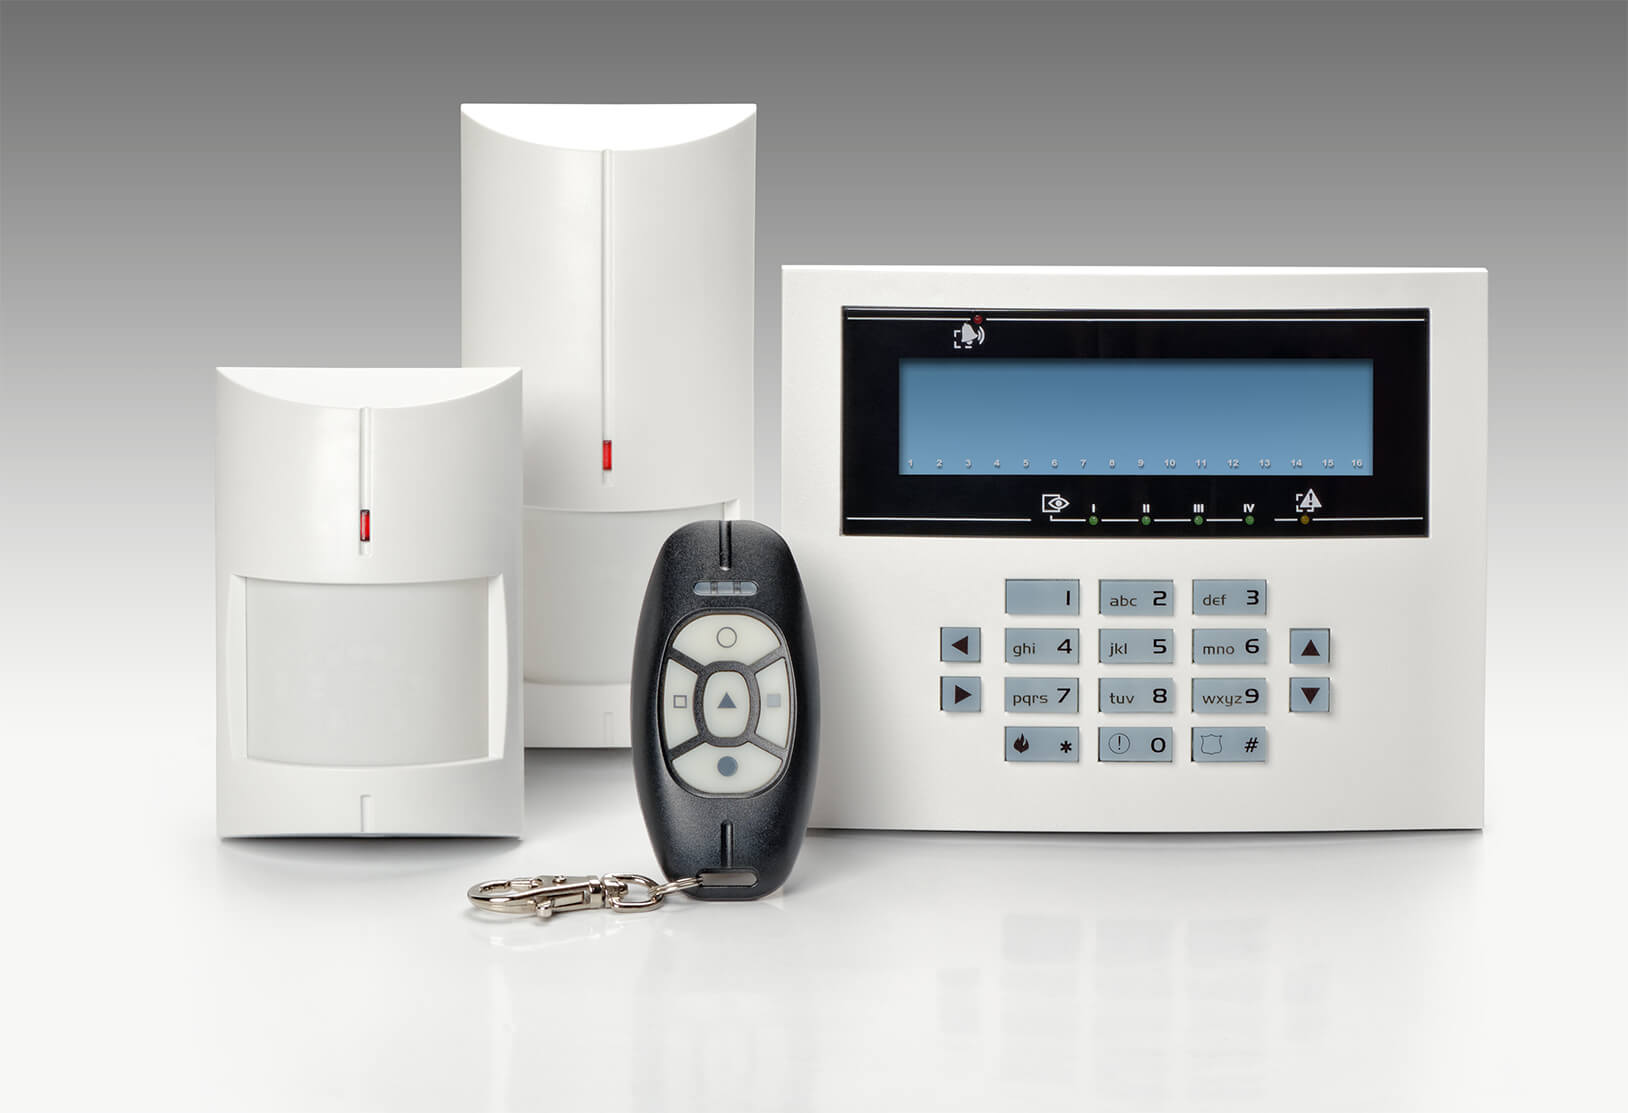 Commercial Burglar Alarms For Business in Clerkenwell EC1  - Local Clerkenwell EC1 burglar alarm company.Call 02078872244 - Dedicated to Safety & Security. Companies, shops and homes ..